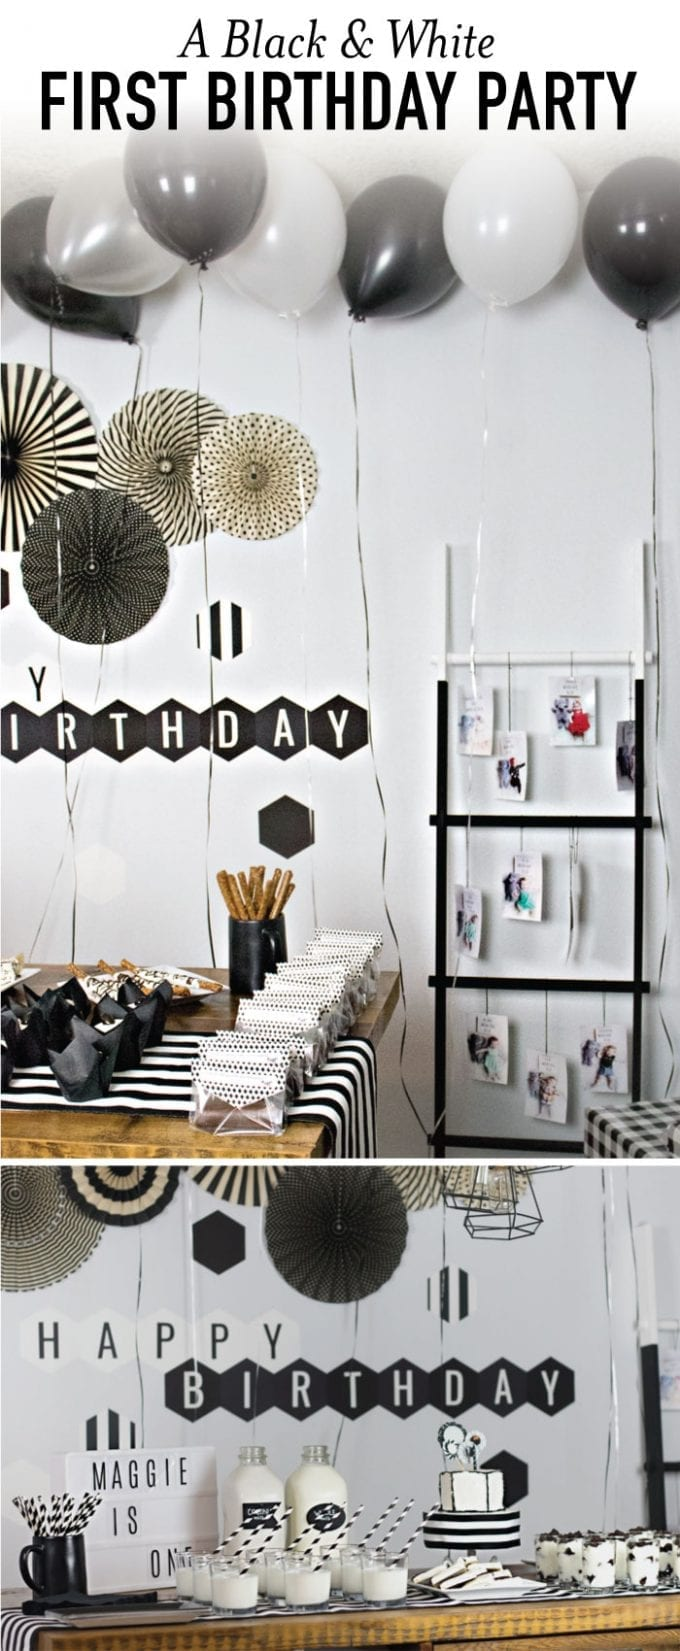 A black and white birthday party